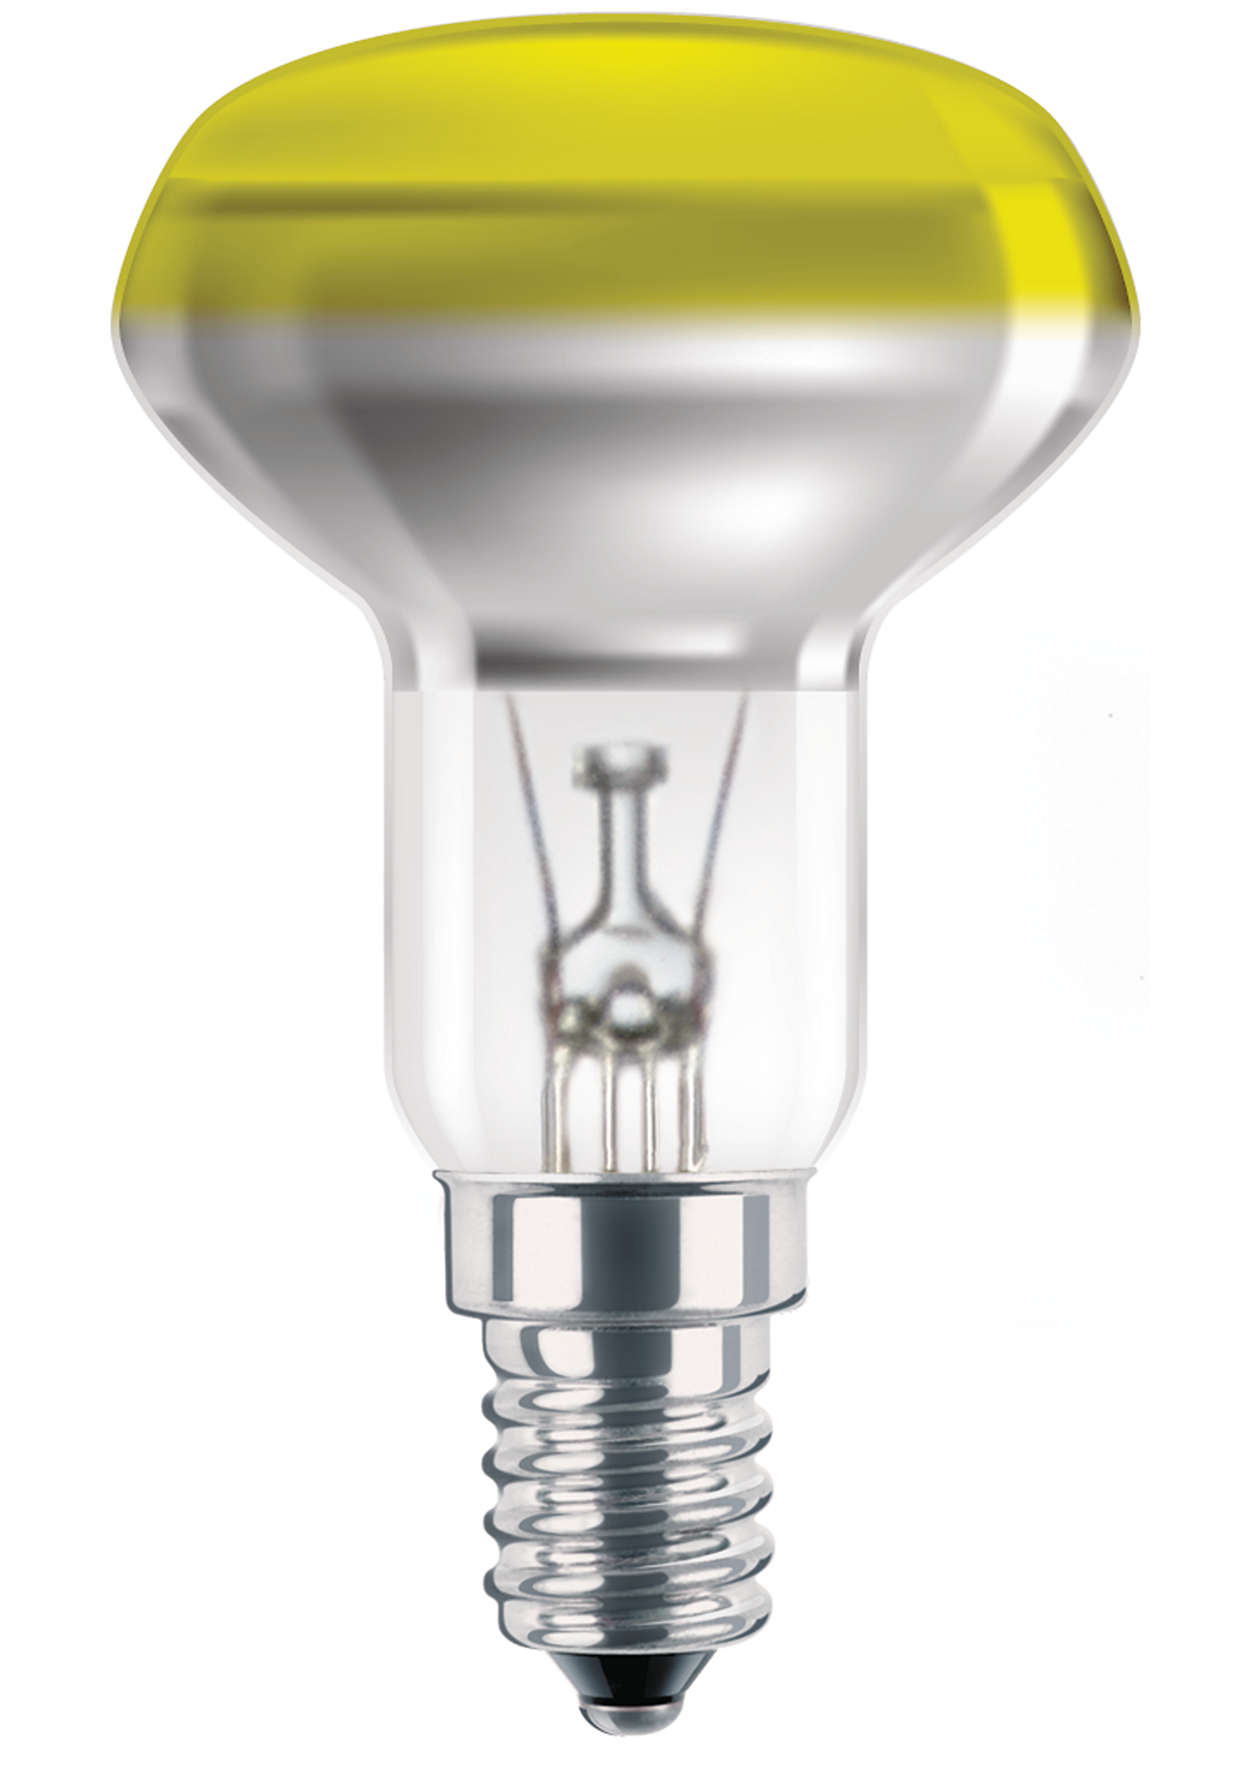 Lampadine colorate a incandescenza con rivestimento superiore